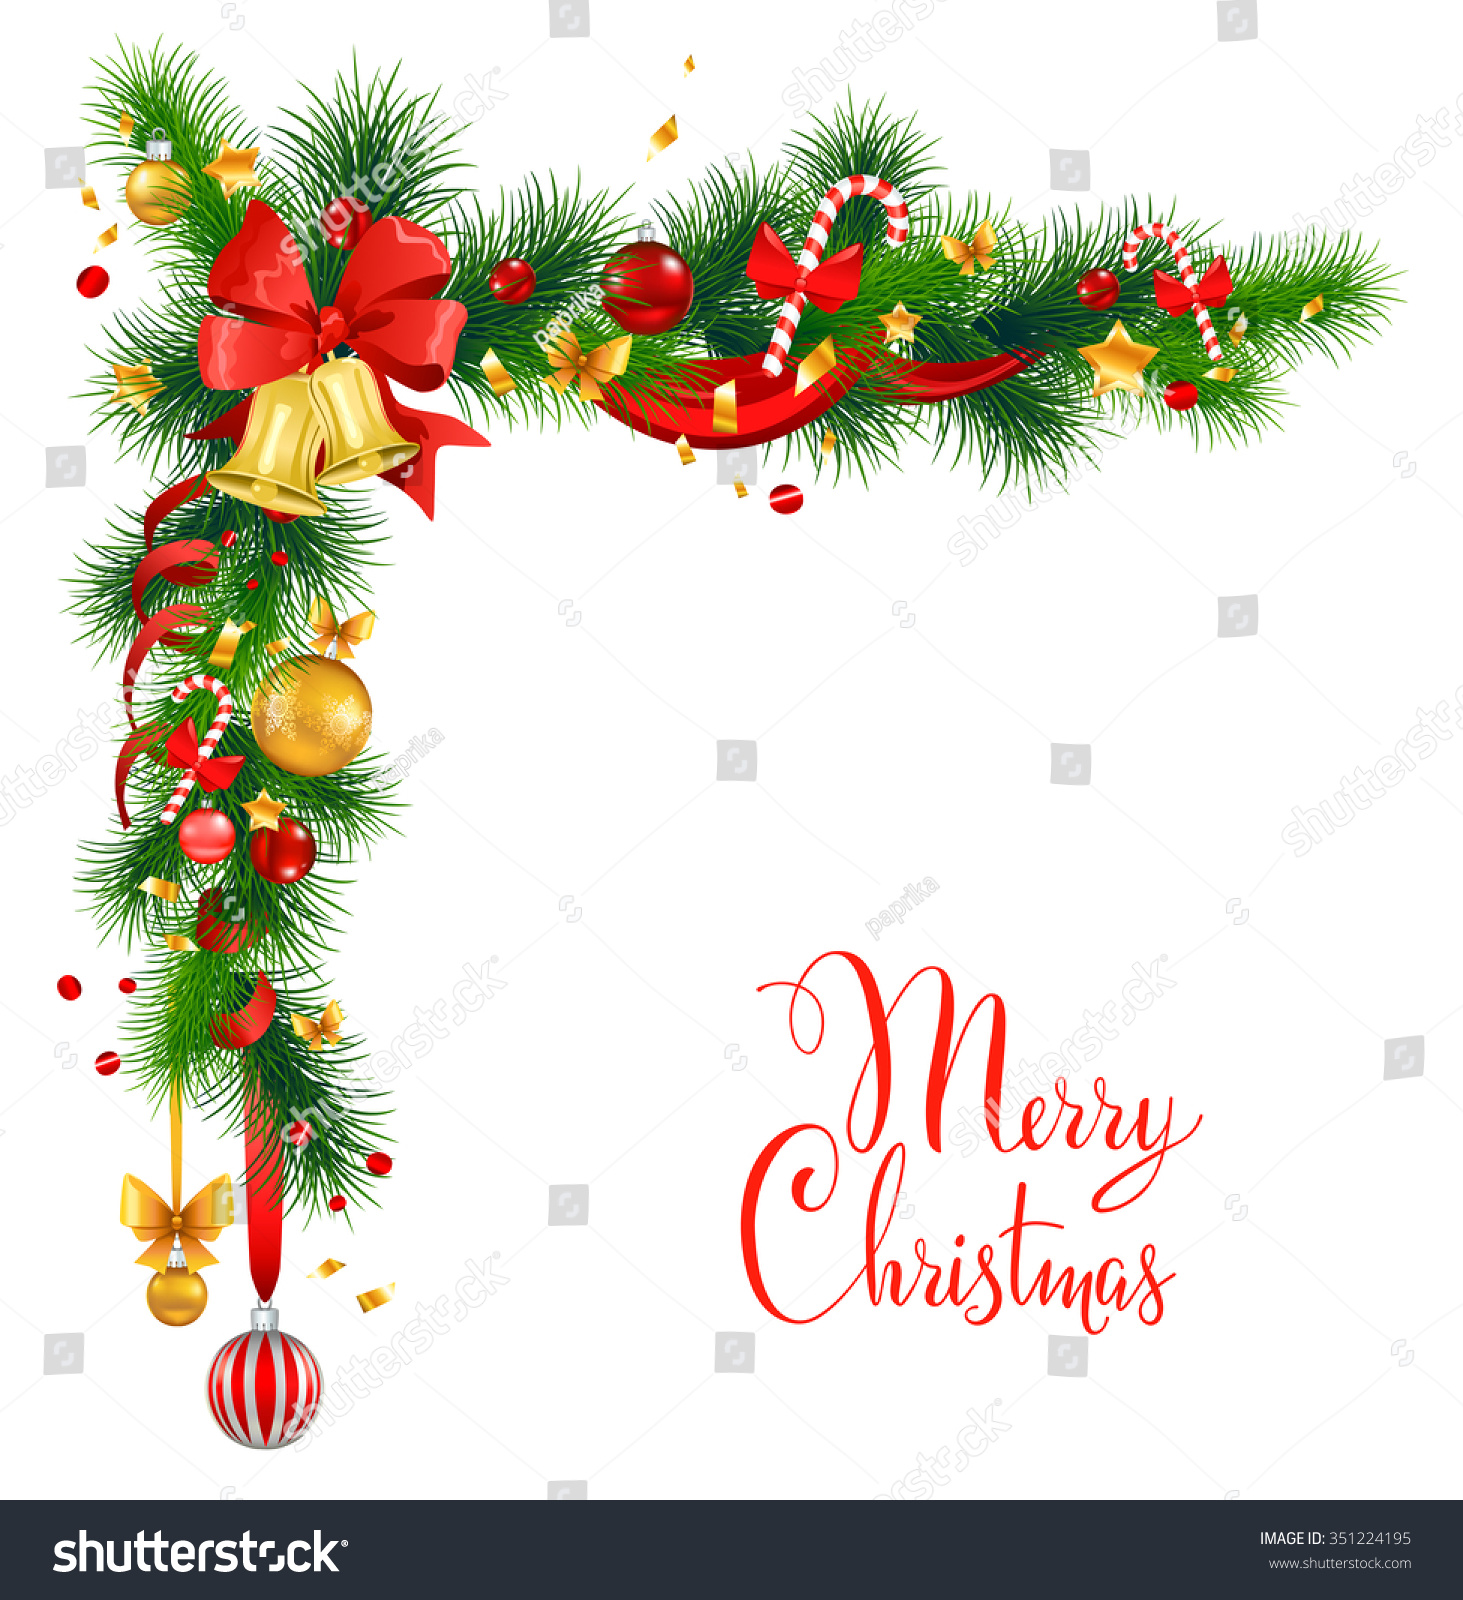 Christmas Decorations Bells Holiday Background Design